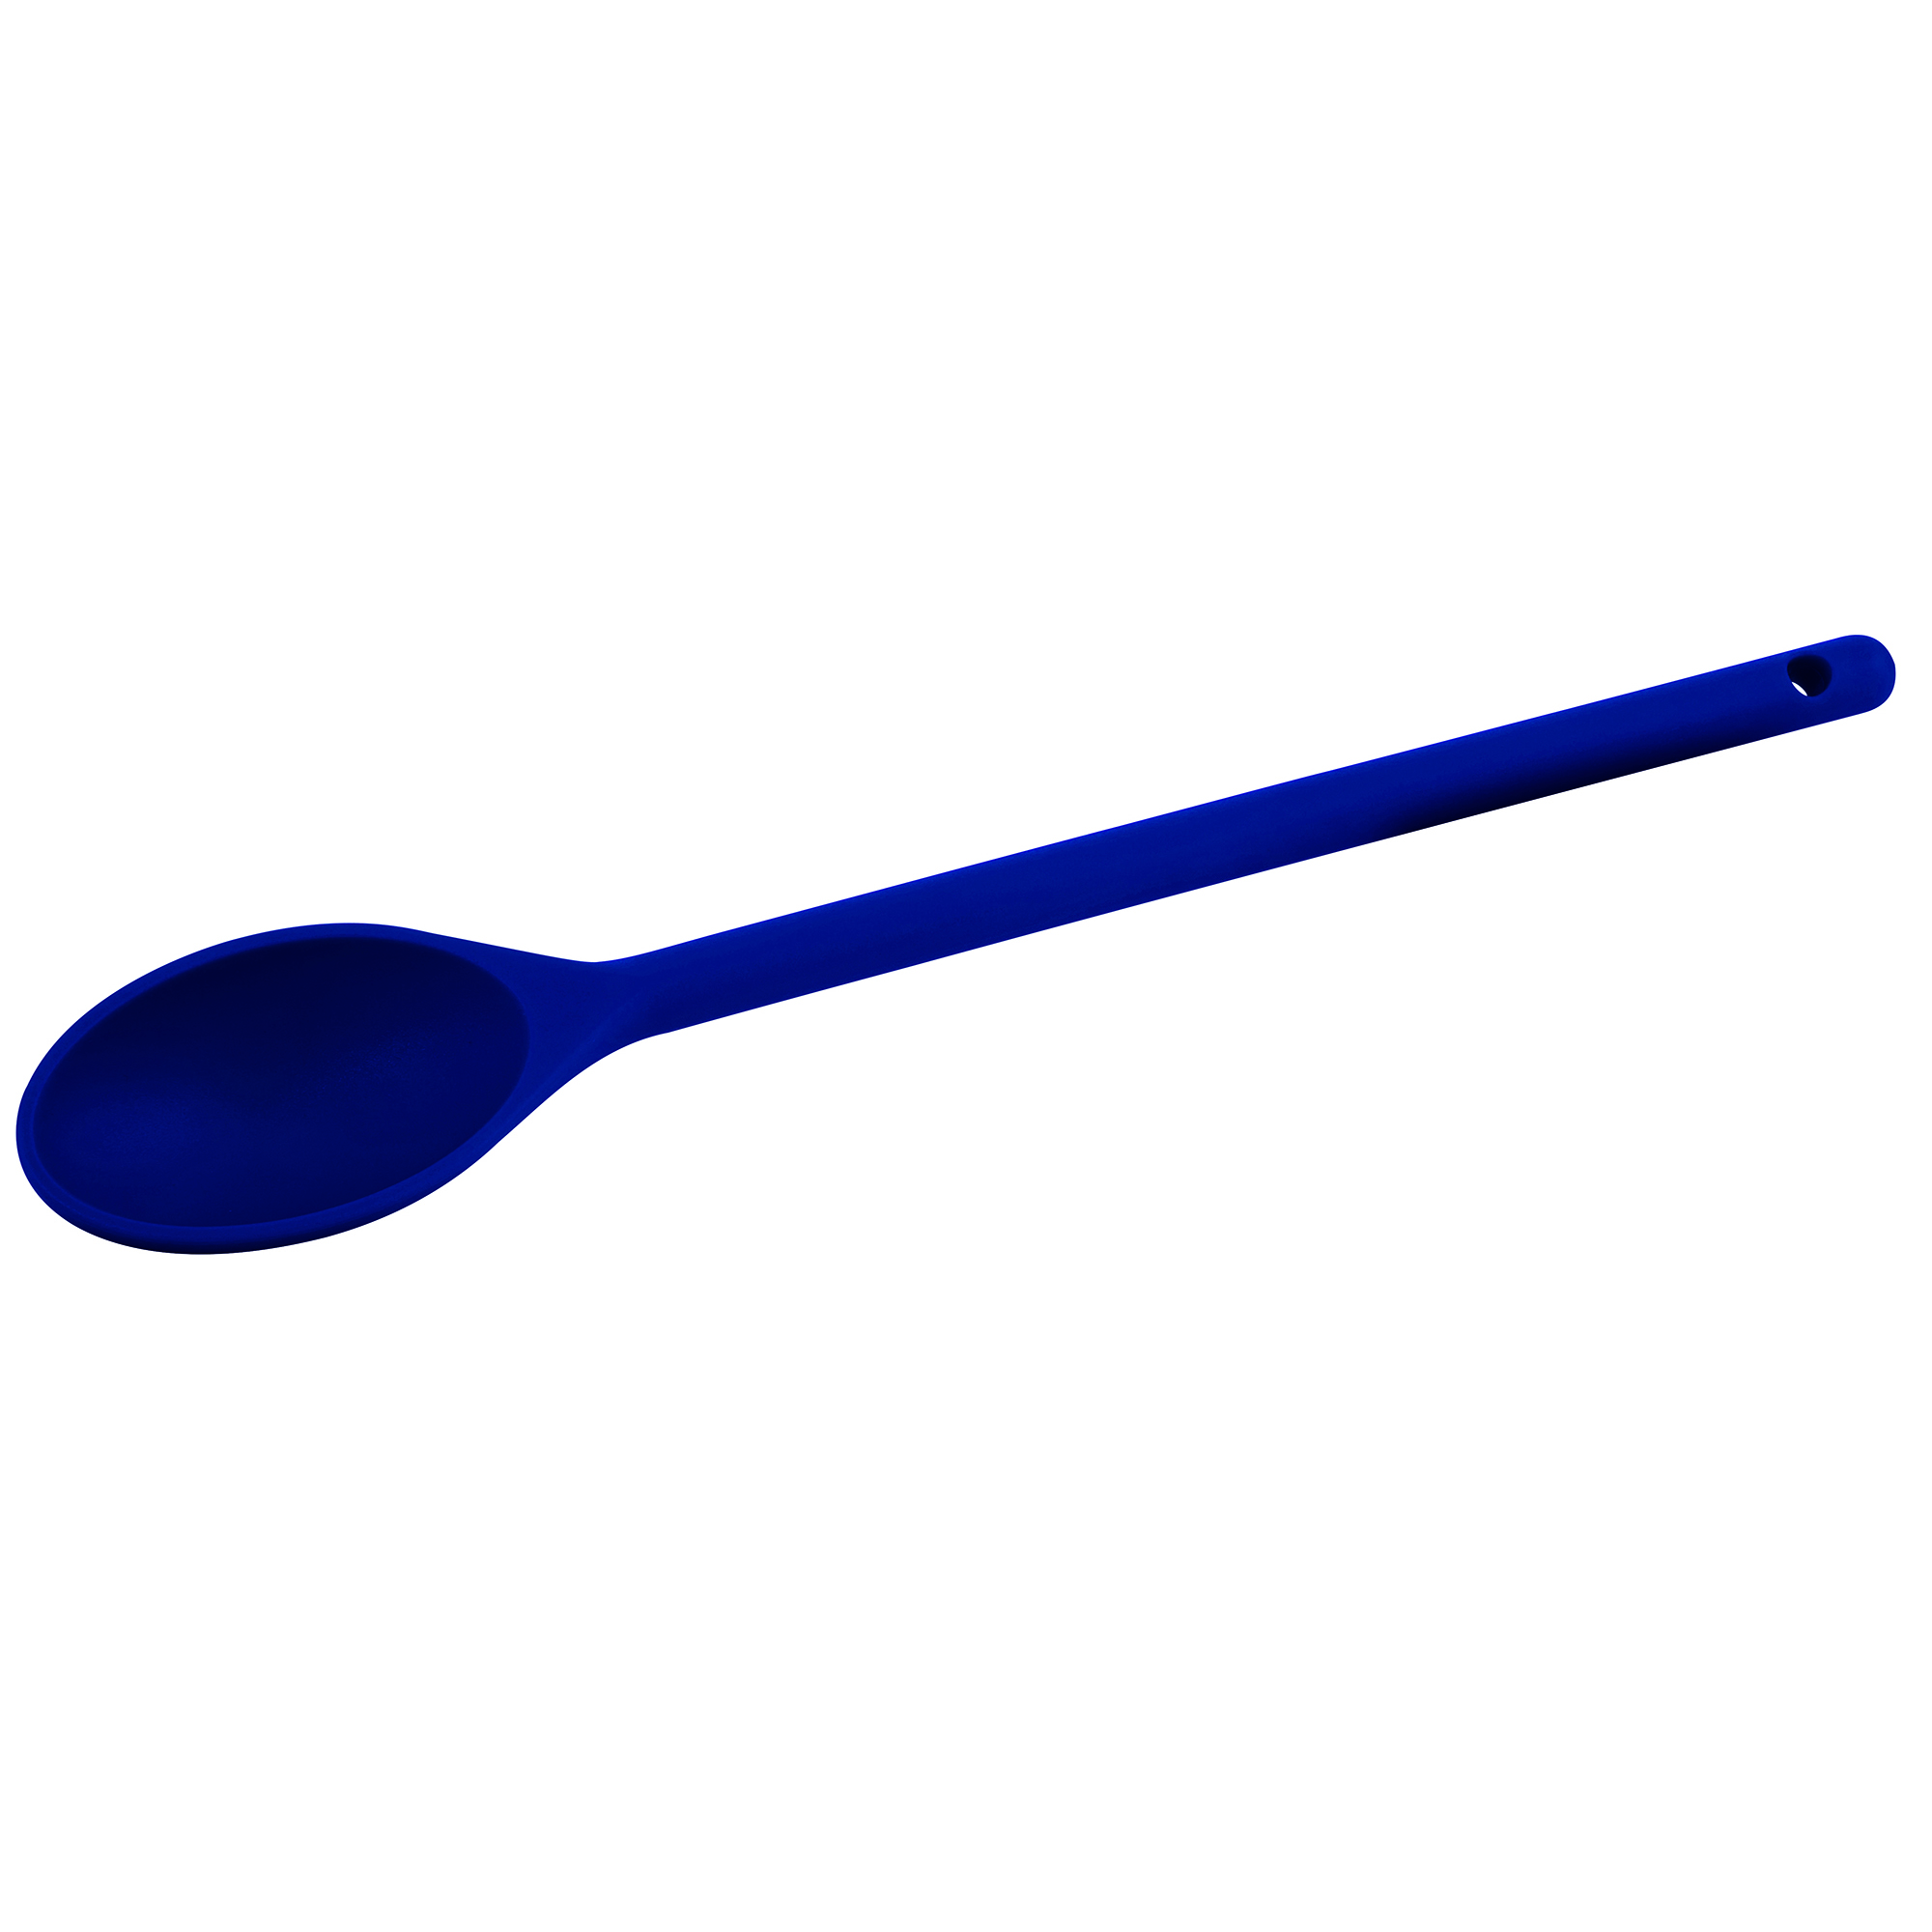 Winco NS-12B serving spoon, solid